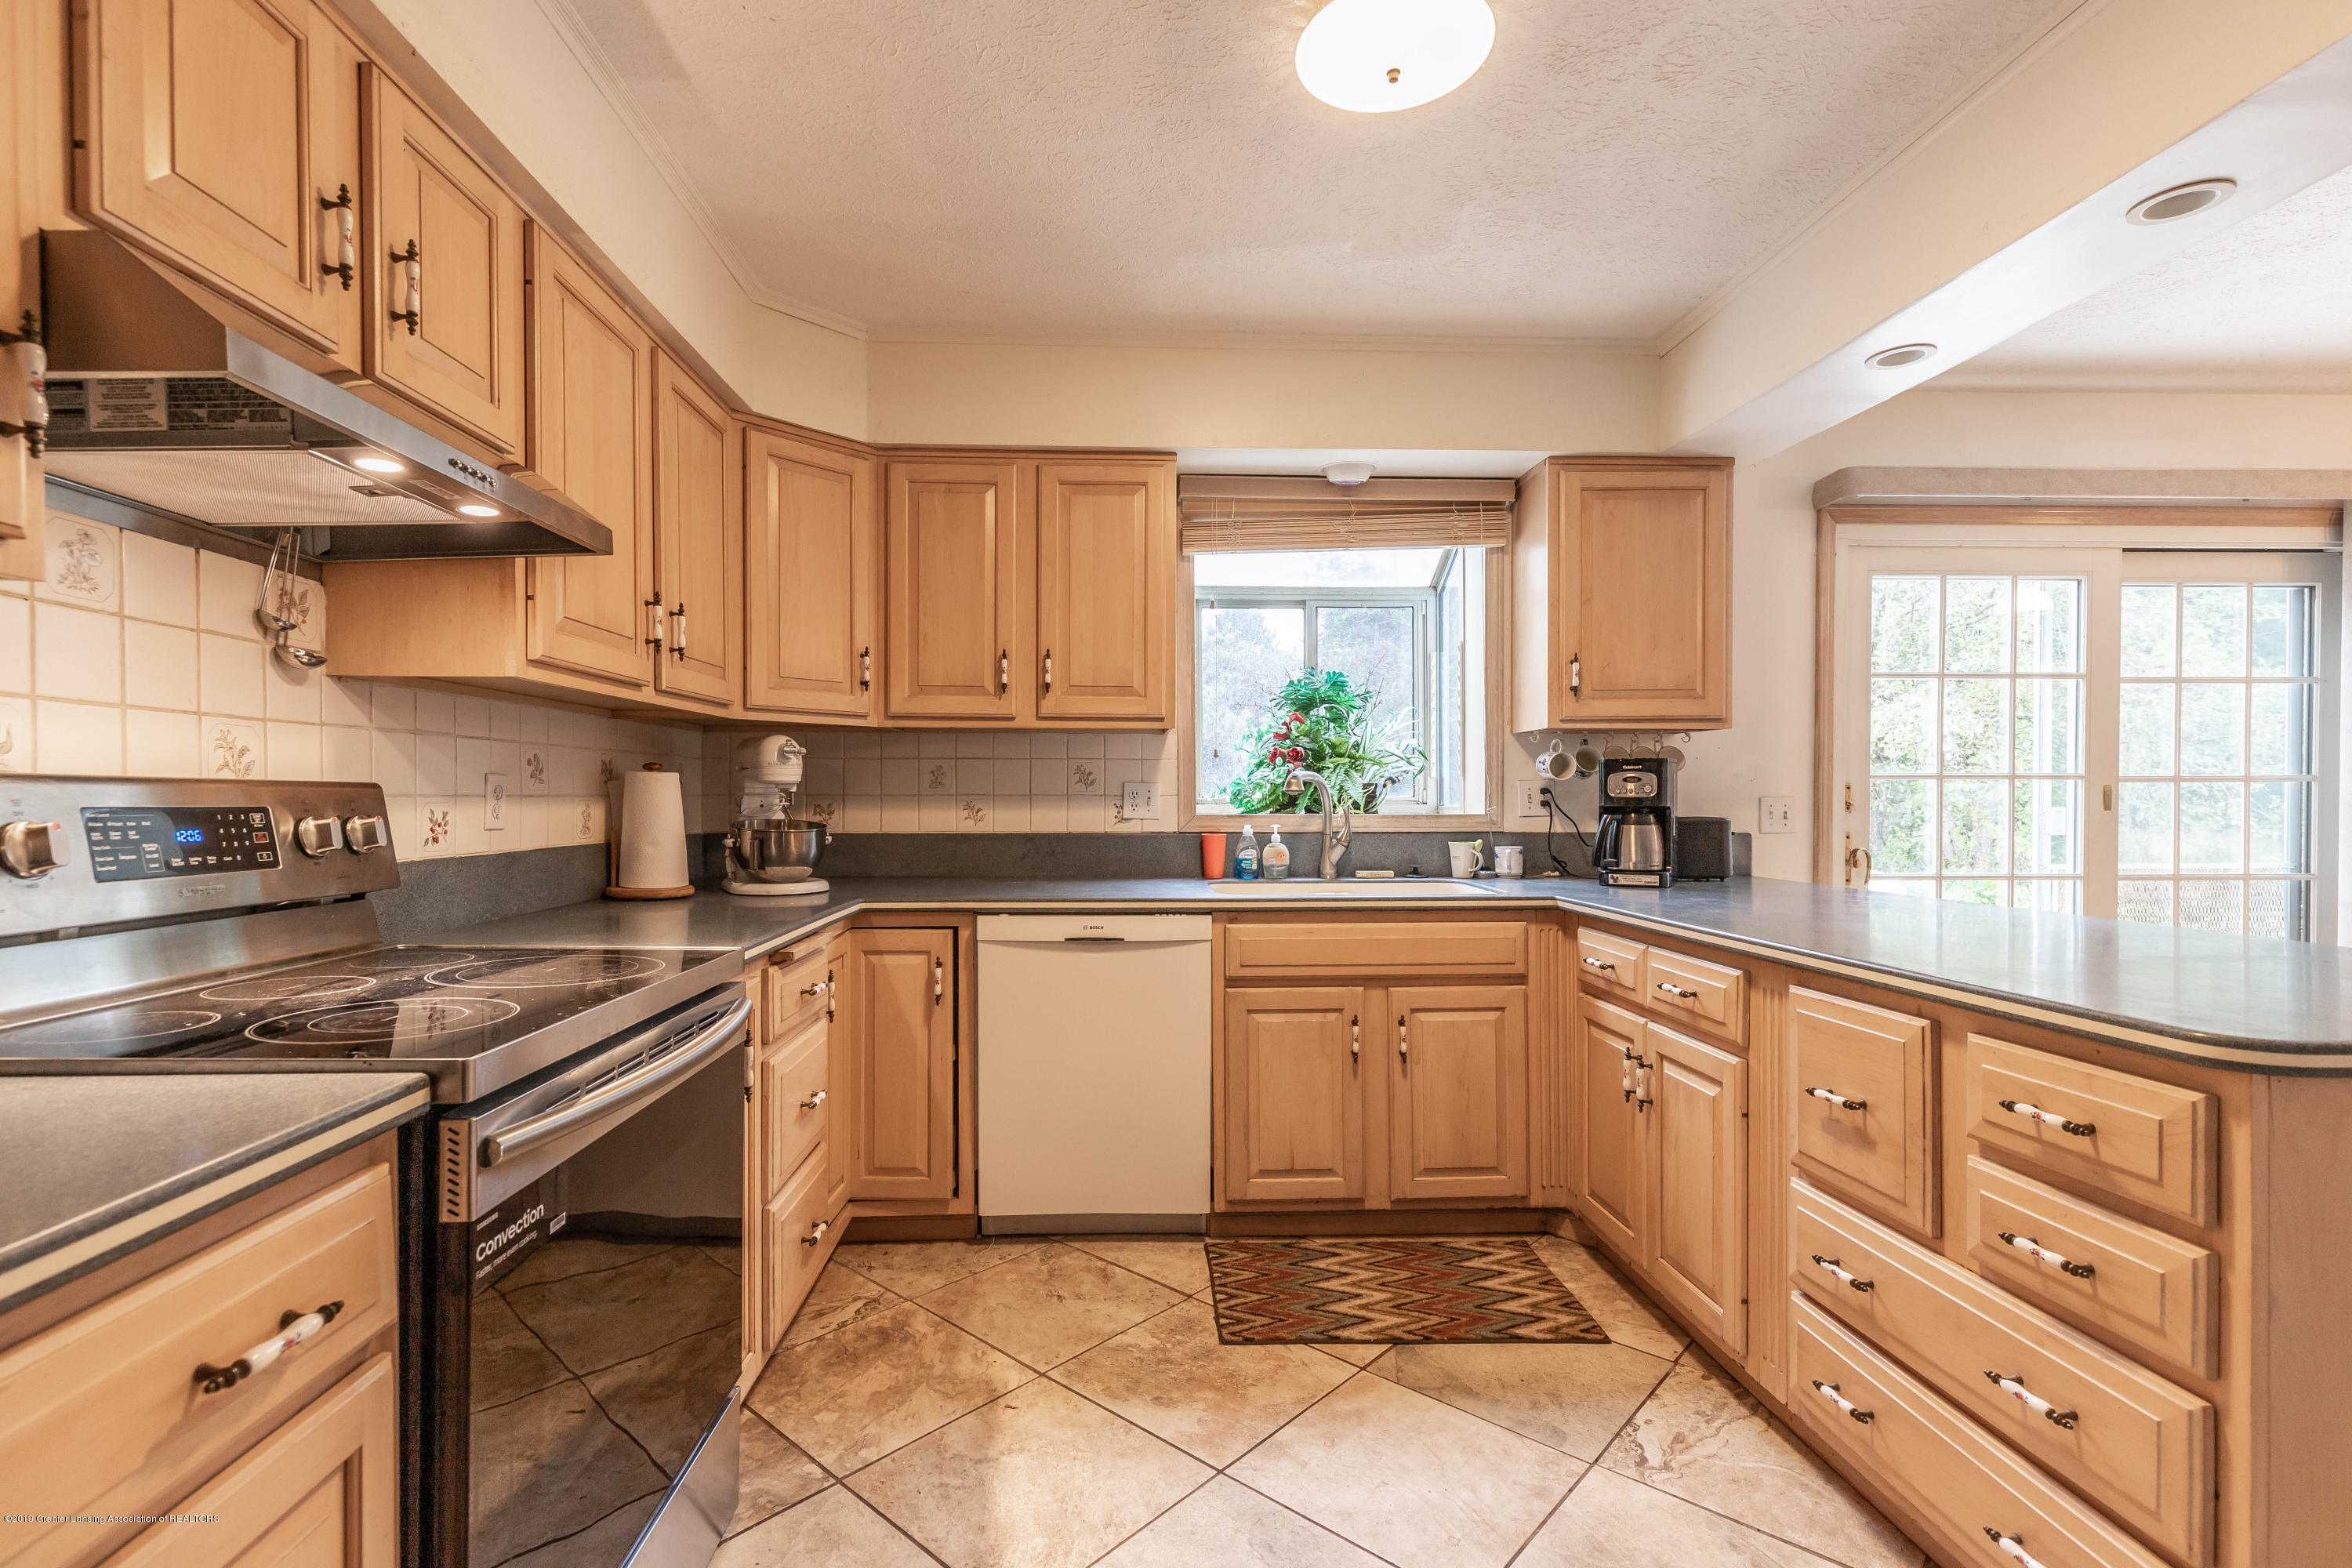 2525 Bell Oak Rd - Kitchen revised 4 - 9